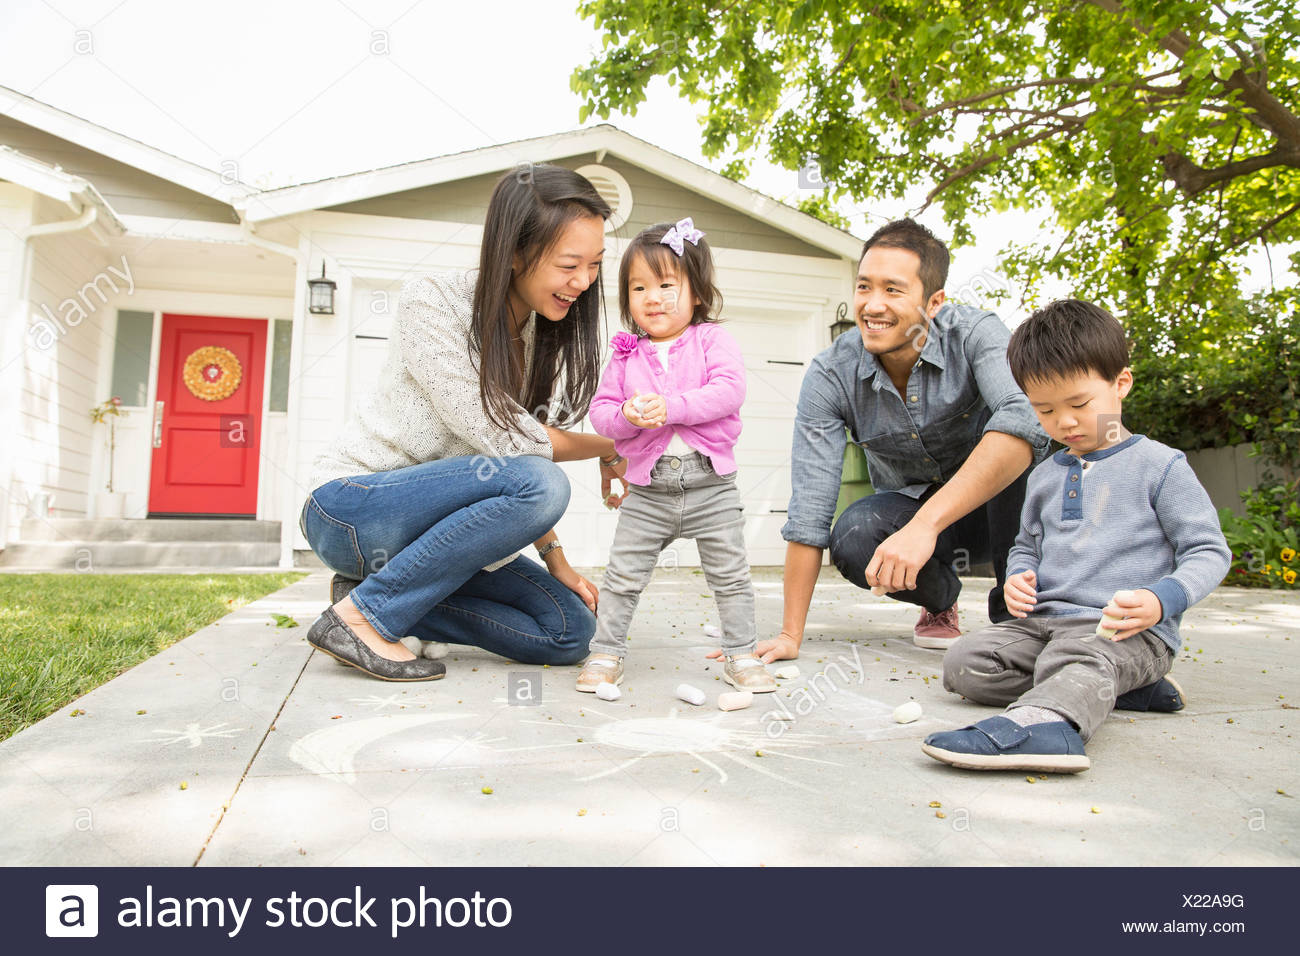 Mid adult couple with two children drawing on paving slabs - Stock Image